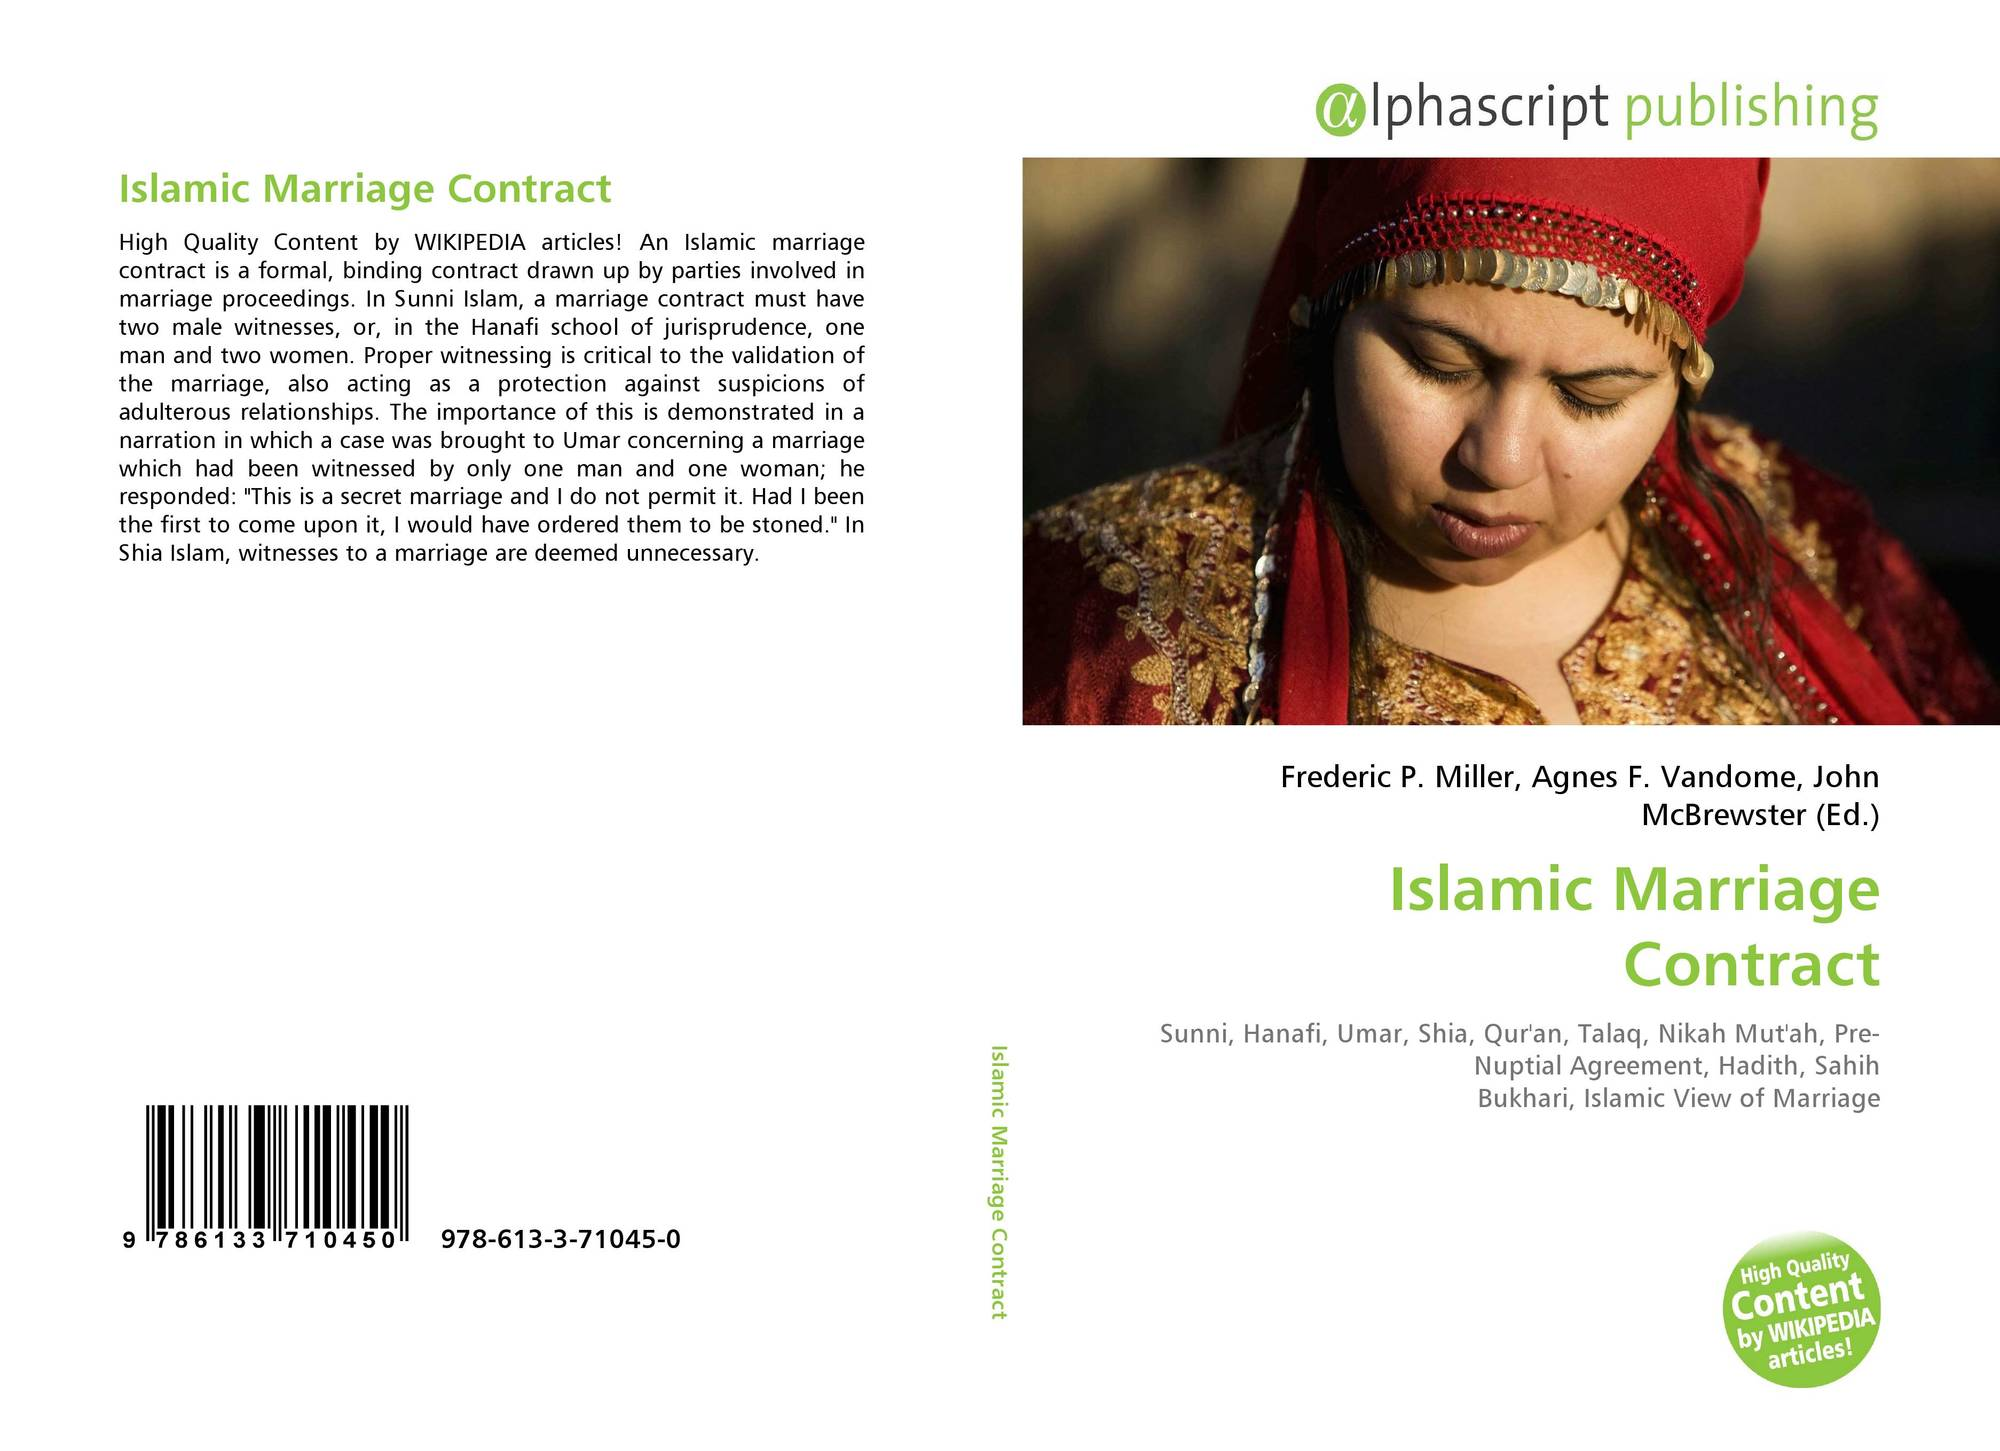 Islamic Marriage Contract, 978-613-3-71045-0, 6133710454